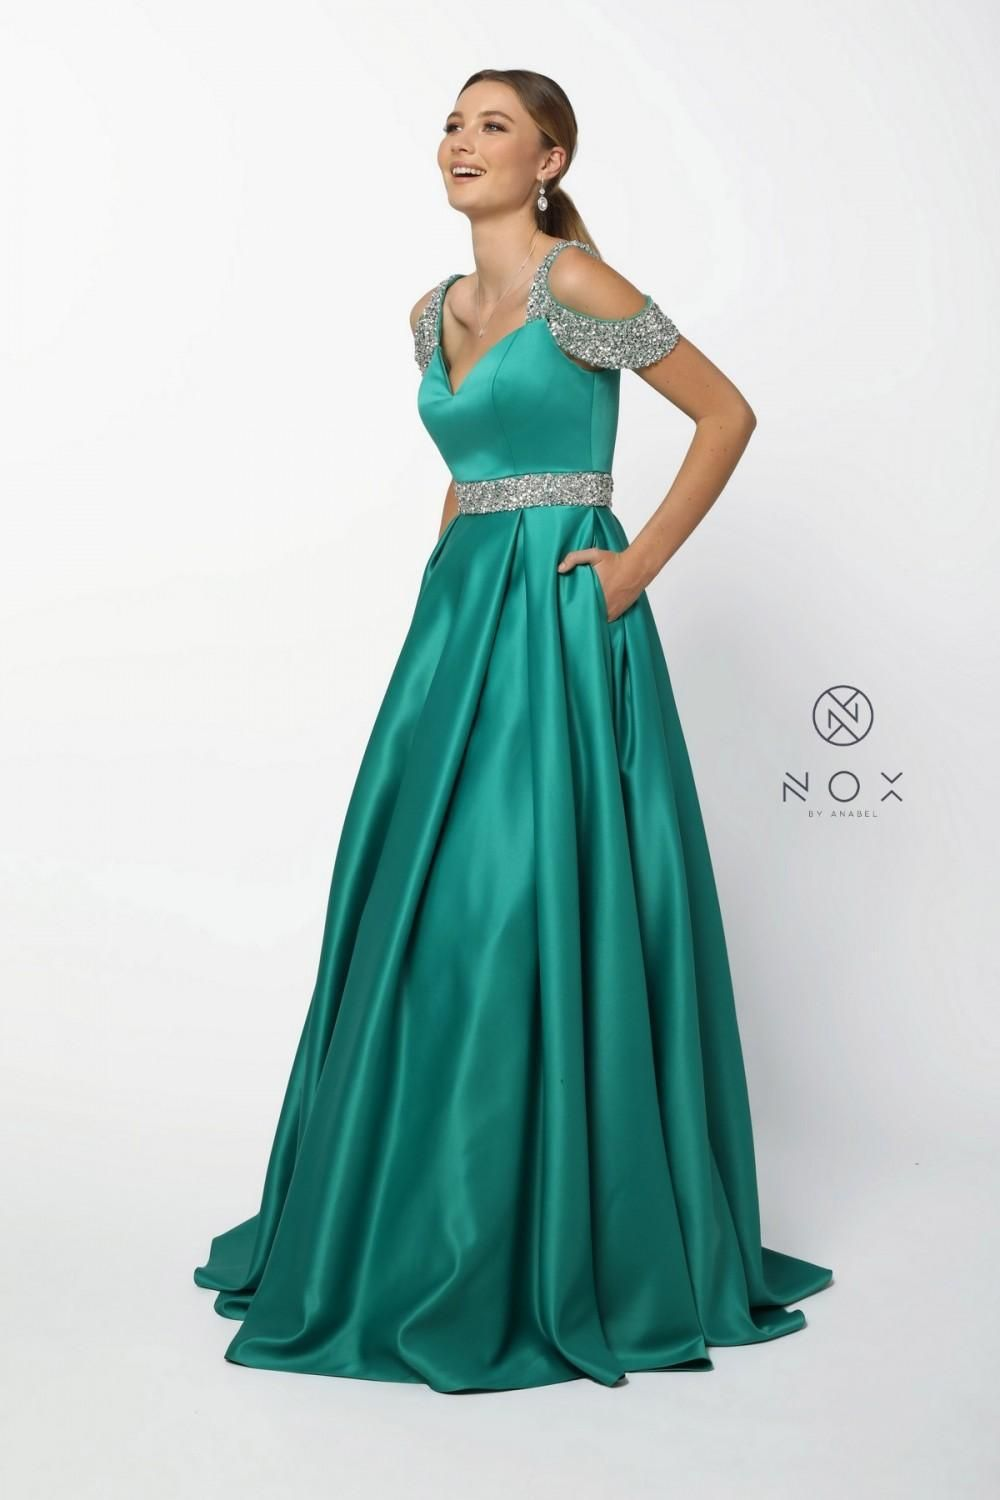 1d2a4e6b588 N R224 - Satin Ballgown With Beaded Belt and Straps in 2019